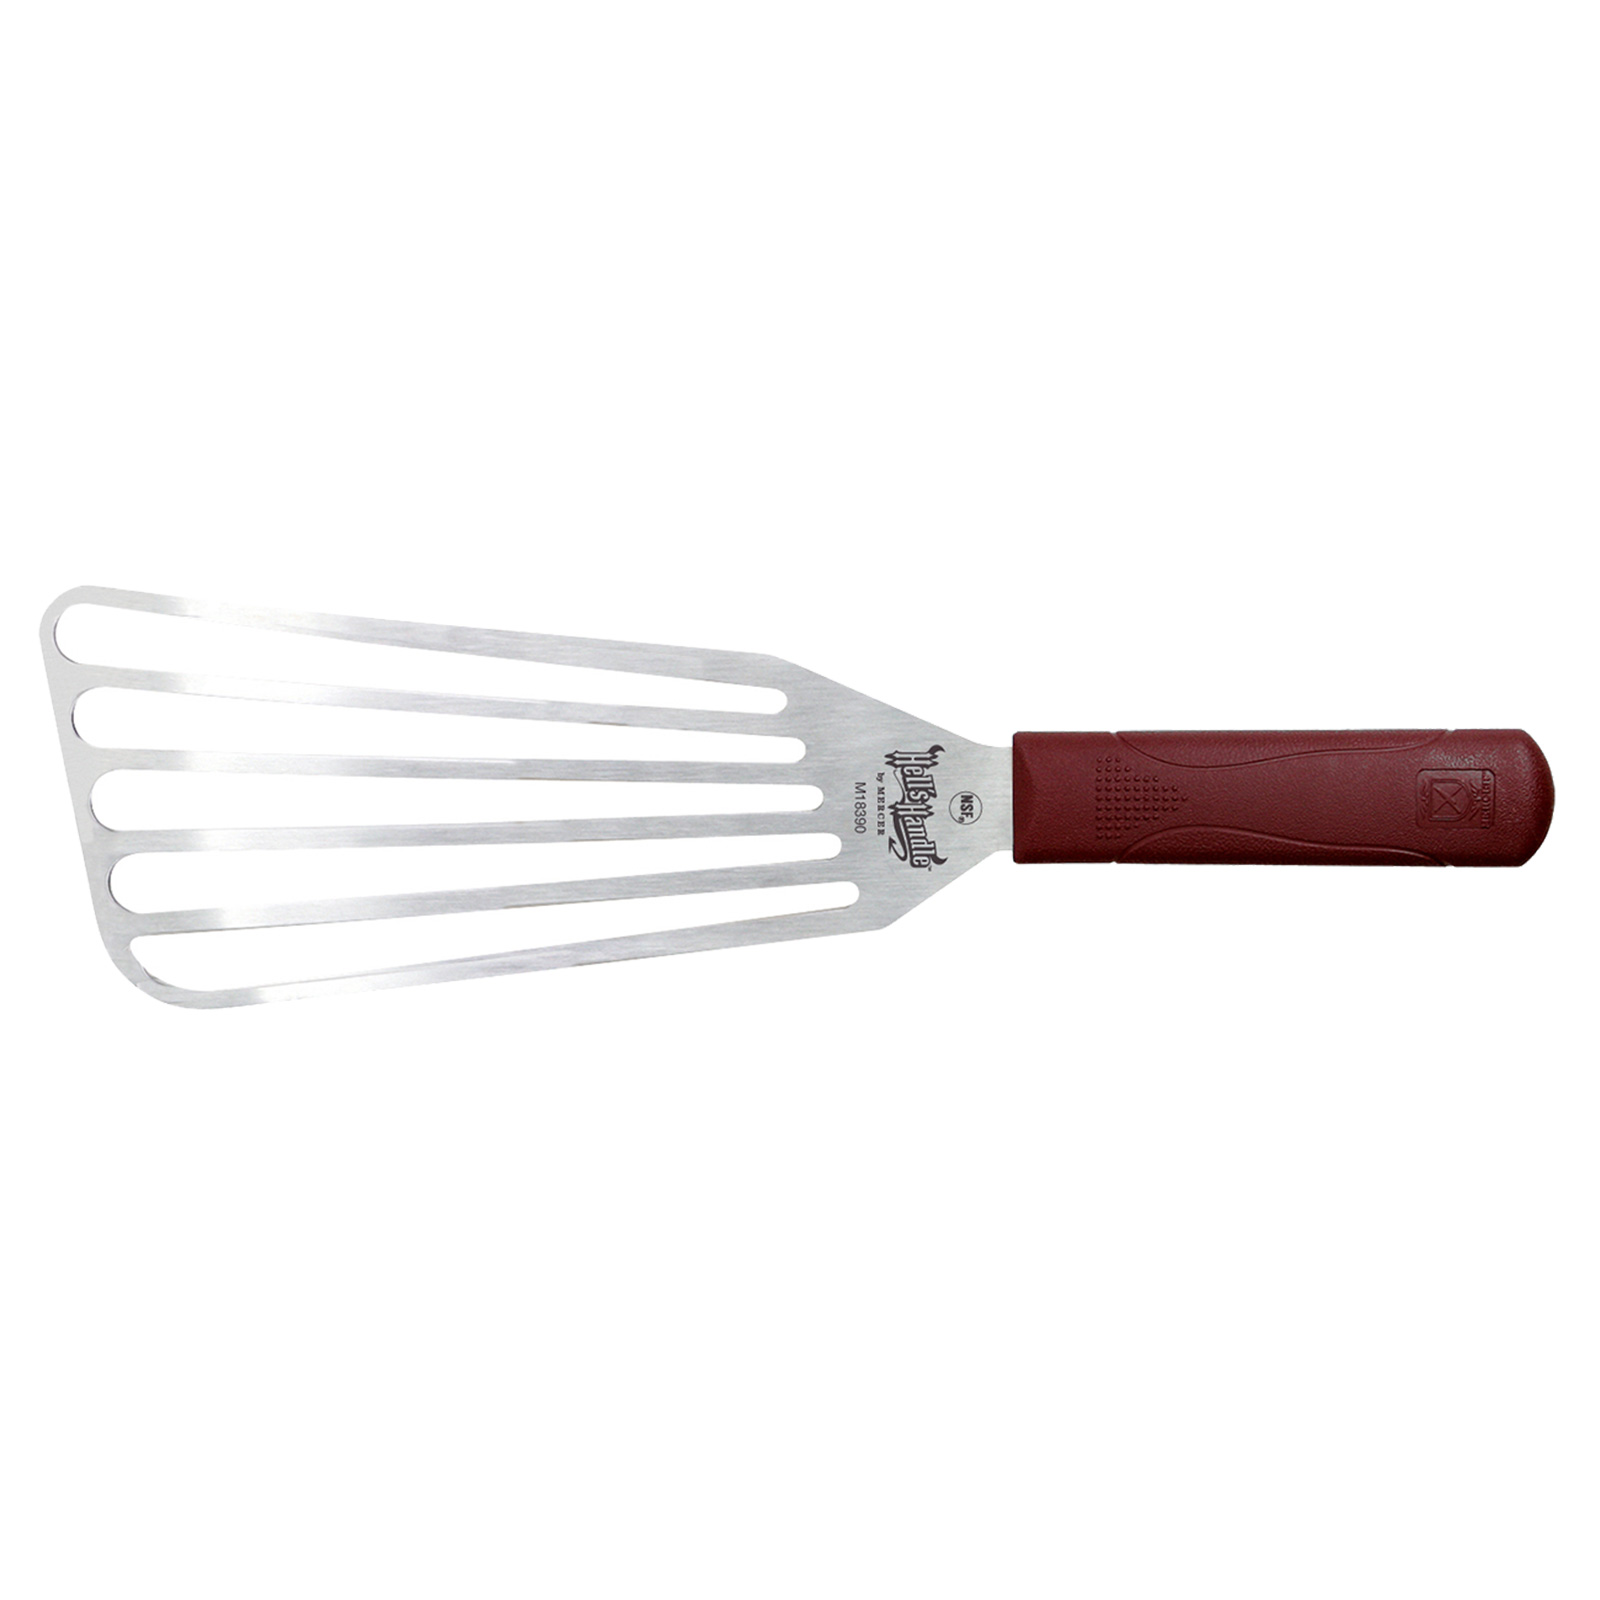 Mercer Culinary M18390 turner, slotted, stainless steel